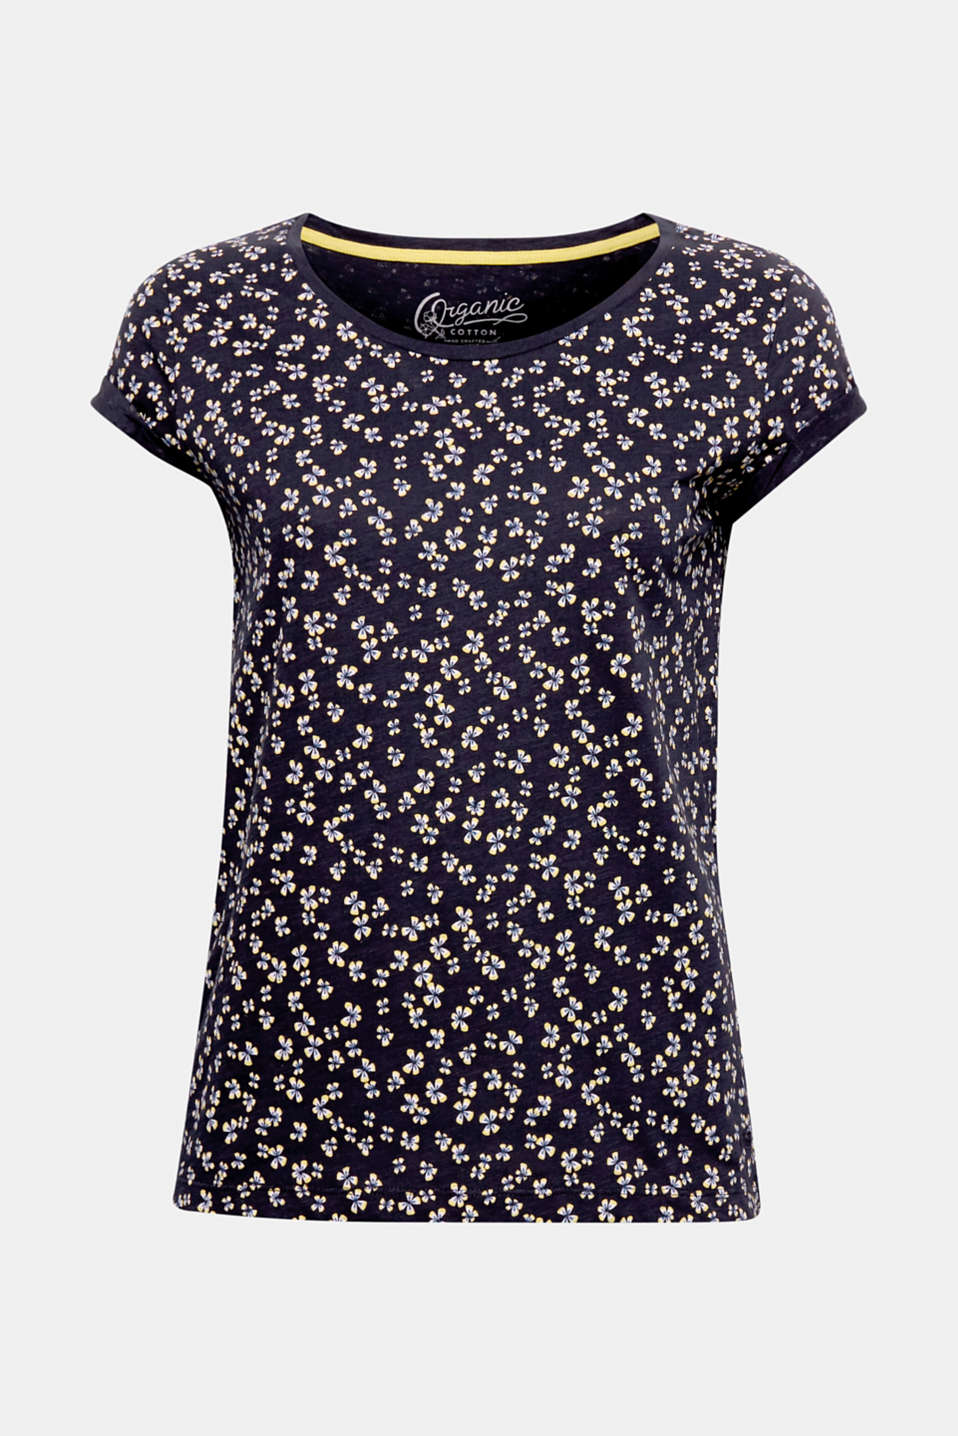 The charming all-over print and sustainable organic cotton make this T-shirt a true favourite piece.